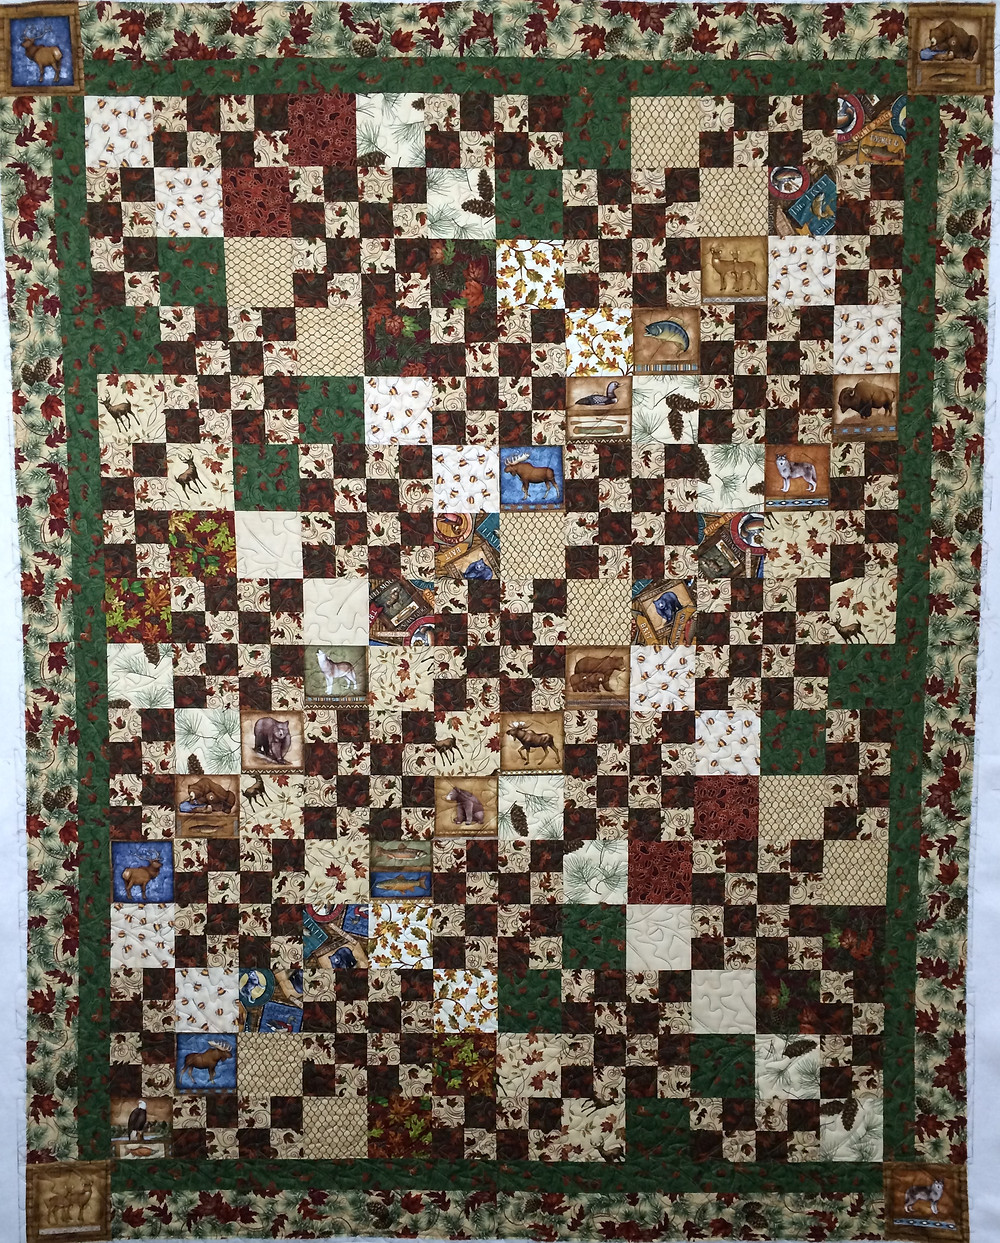 country lodge quilt with animal motifs